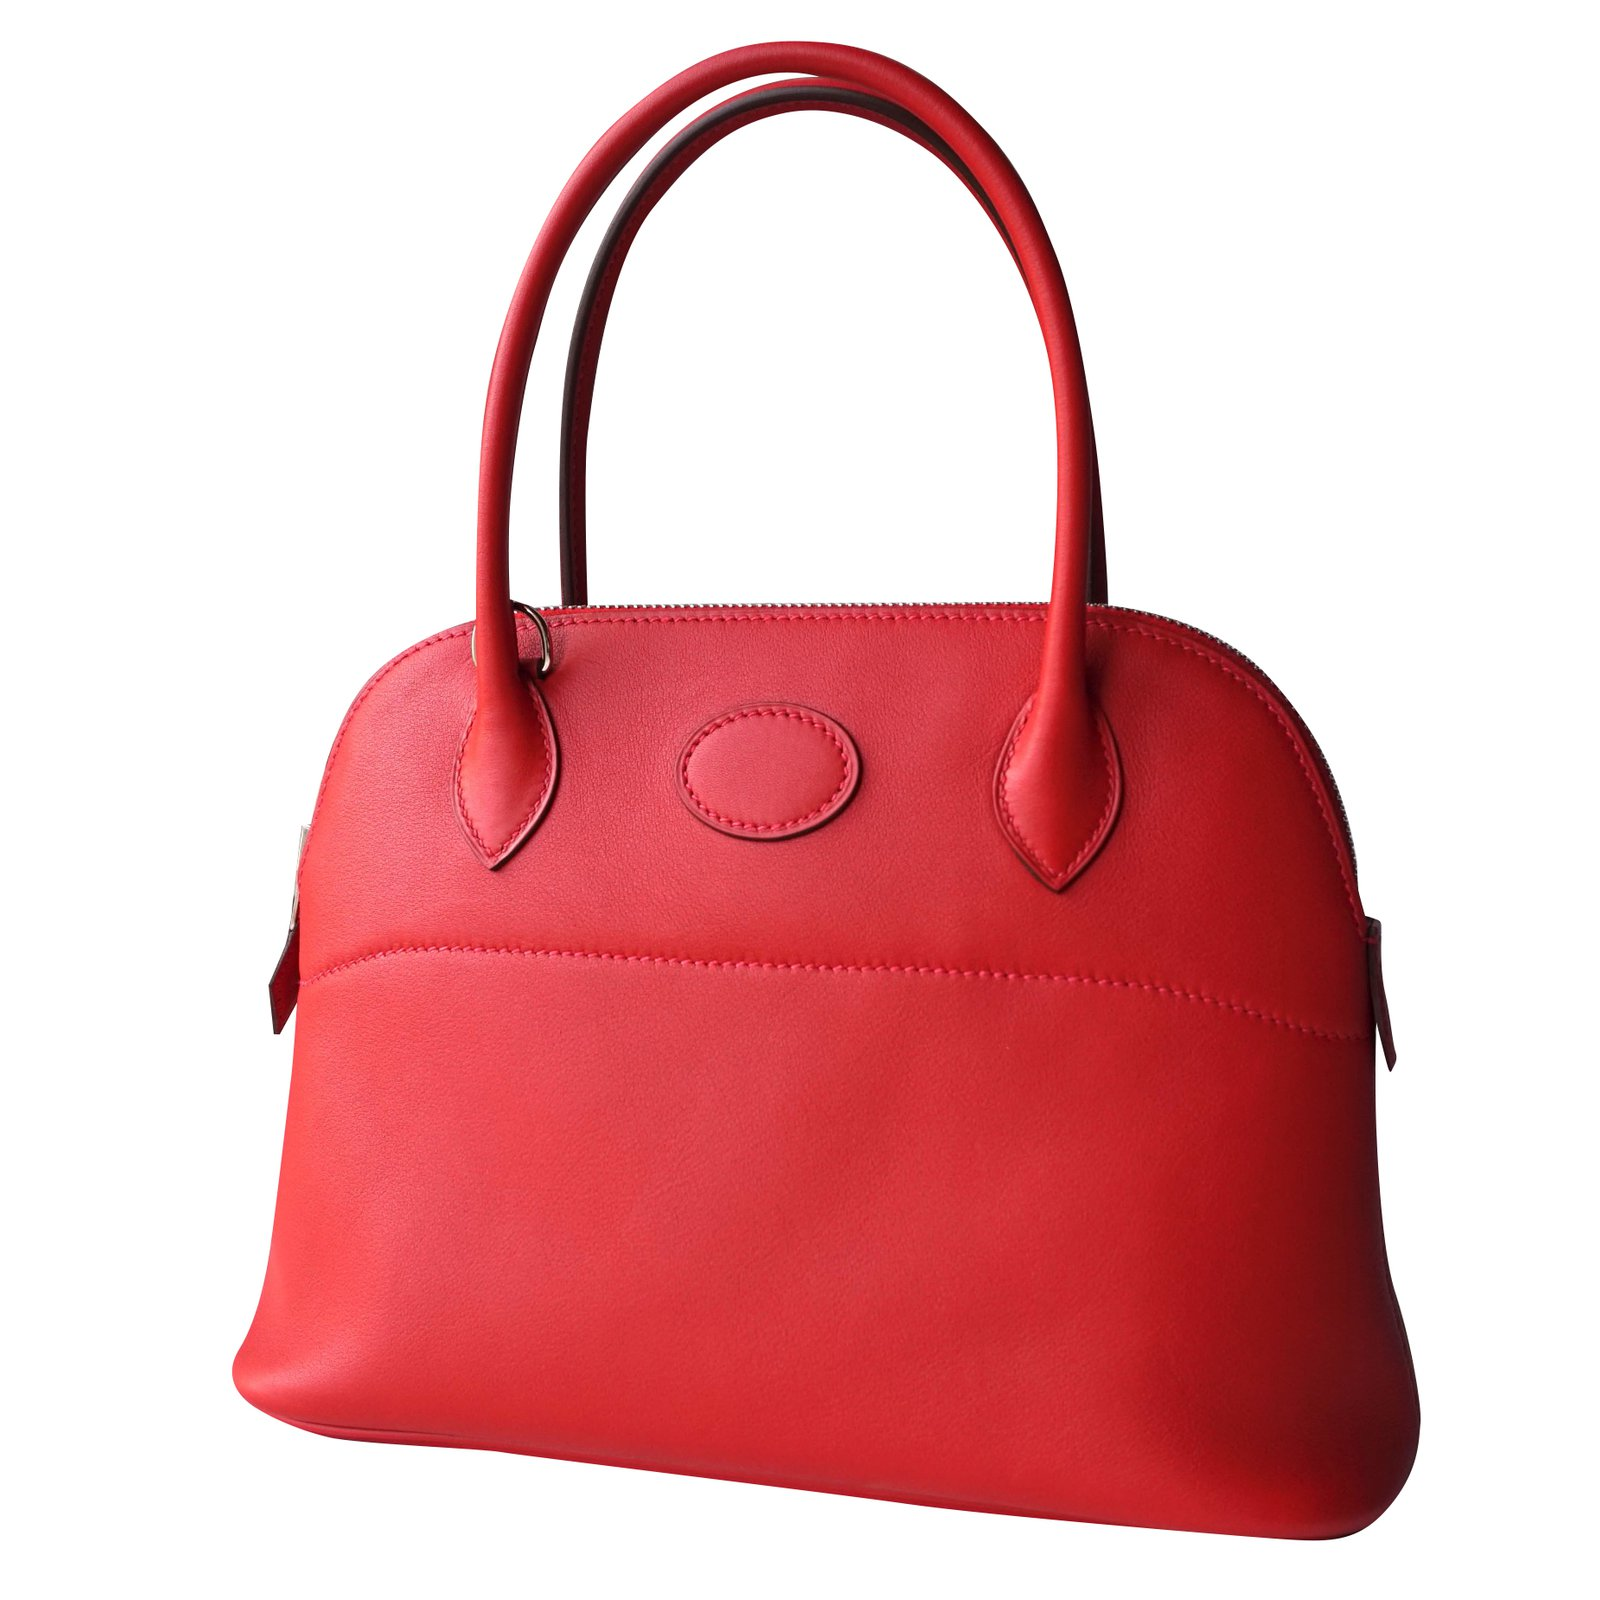 bcdbbbca7a Hermès Bolide 27 Handbags Leather Red ref.38705 - Joli Closet